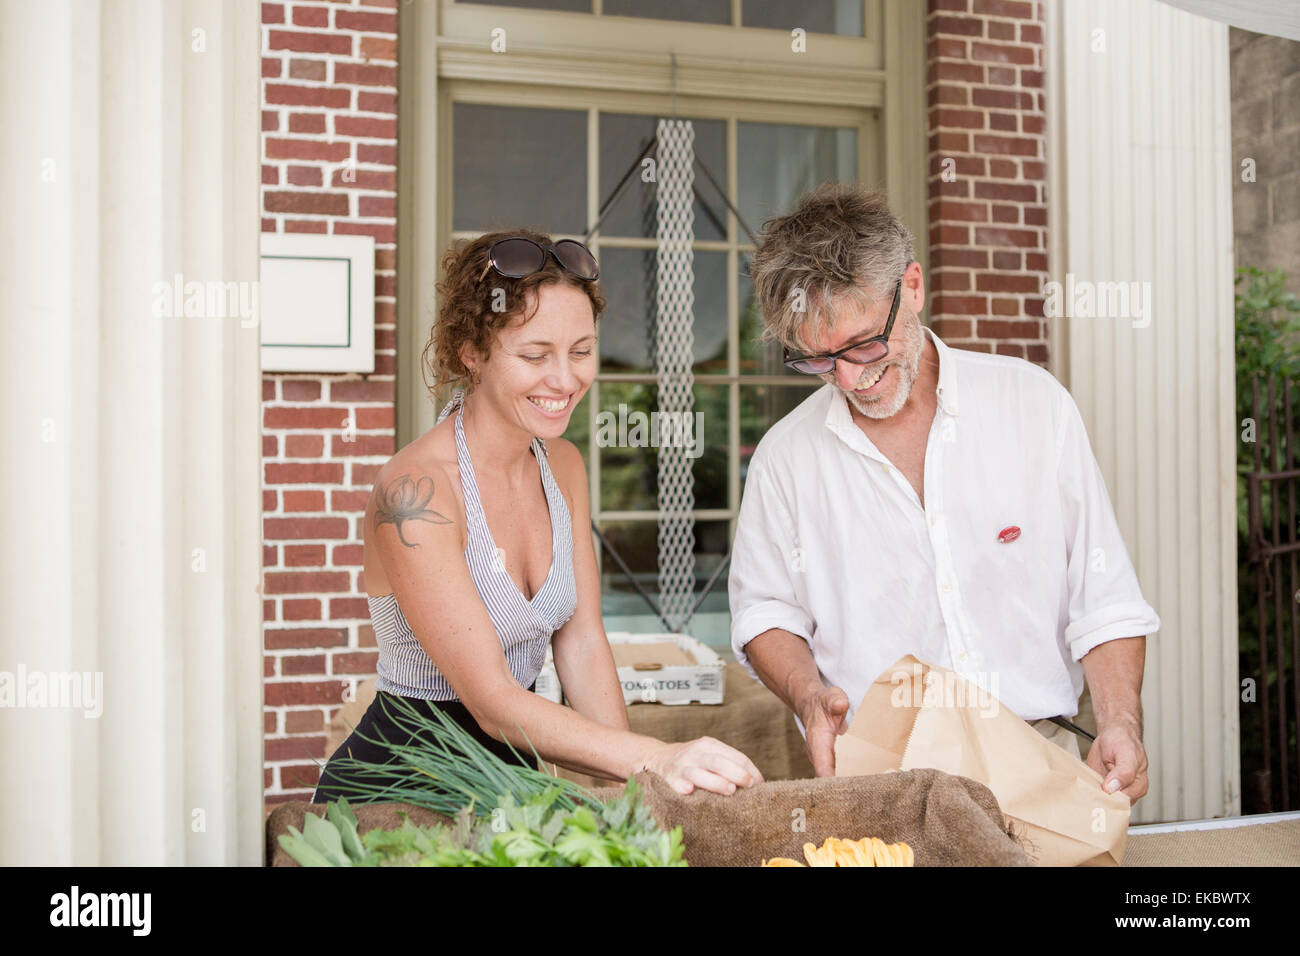 Farmers selling organic vegetables on stall outside store - Stock Image